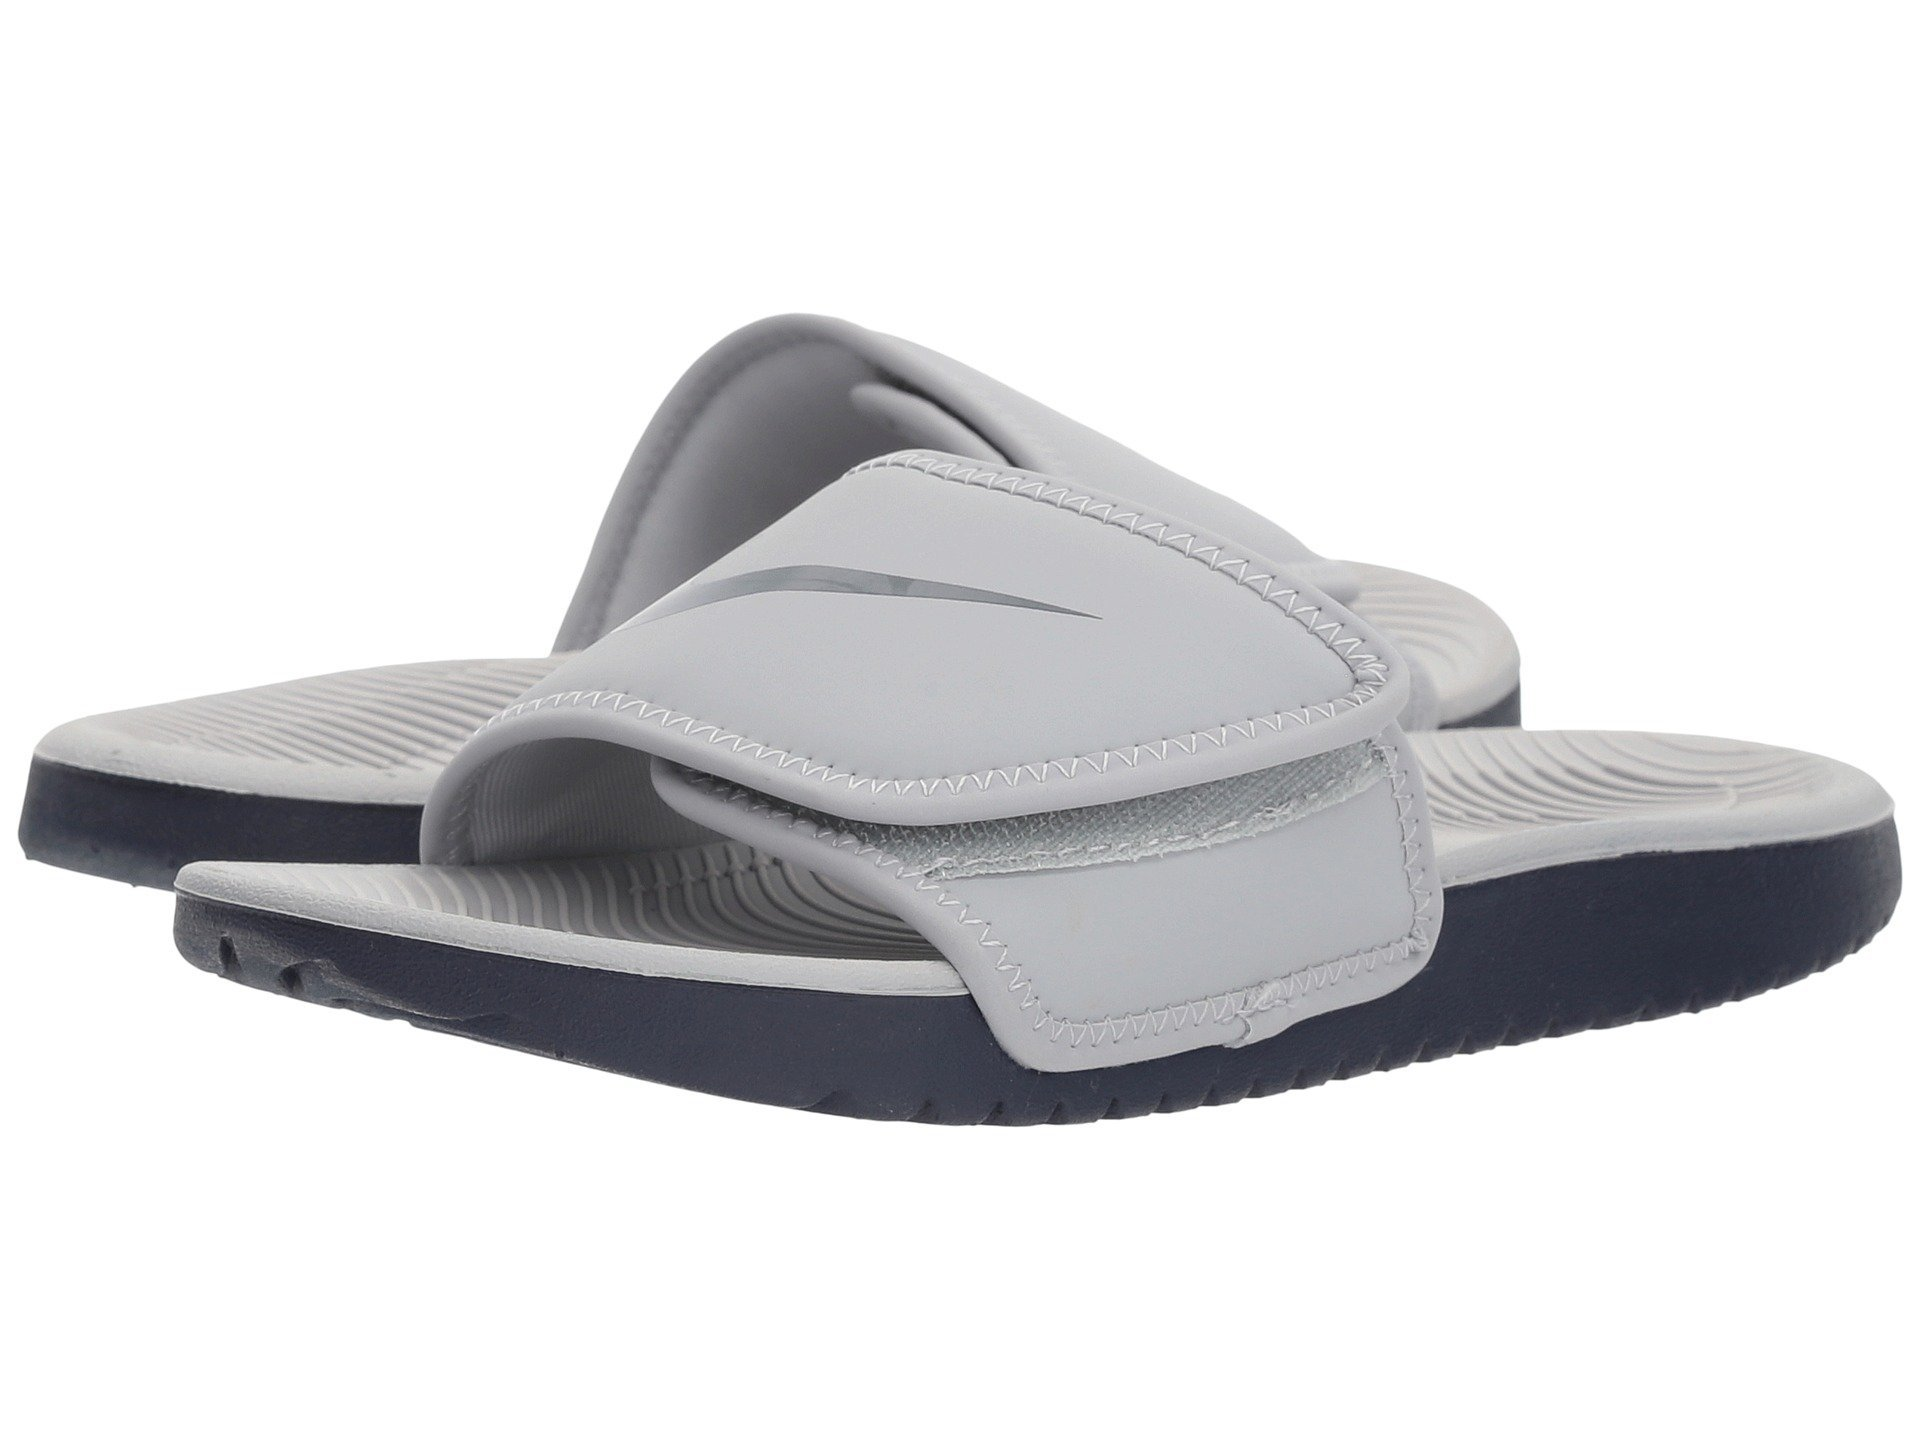 aadeda839e77 Galleon - NIKE Boy s Slide Kawa Adjust (GS PS)